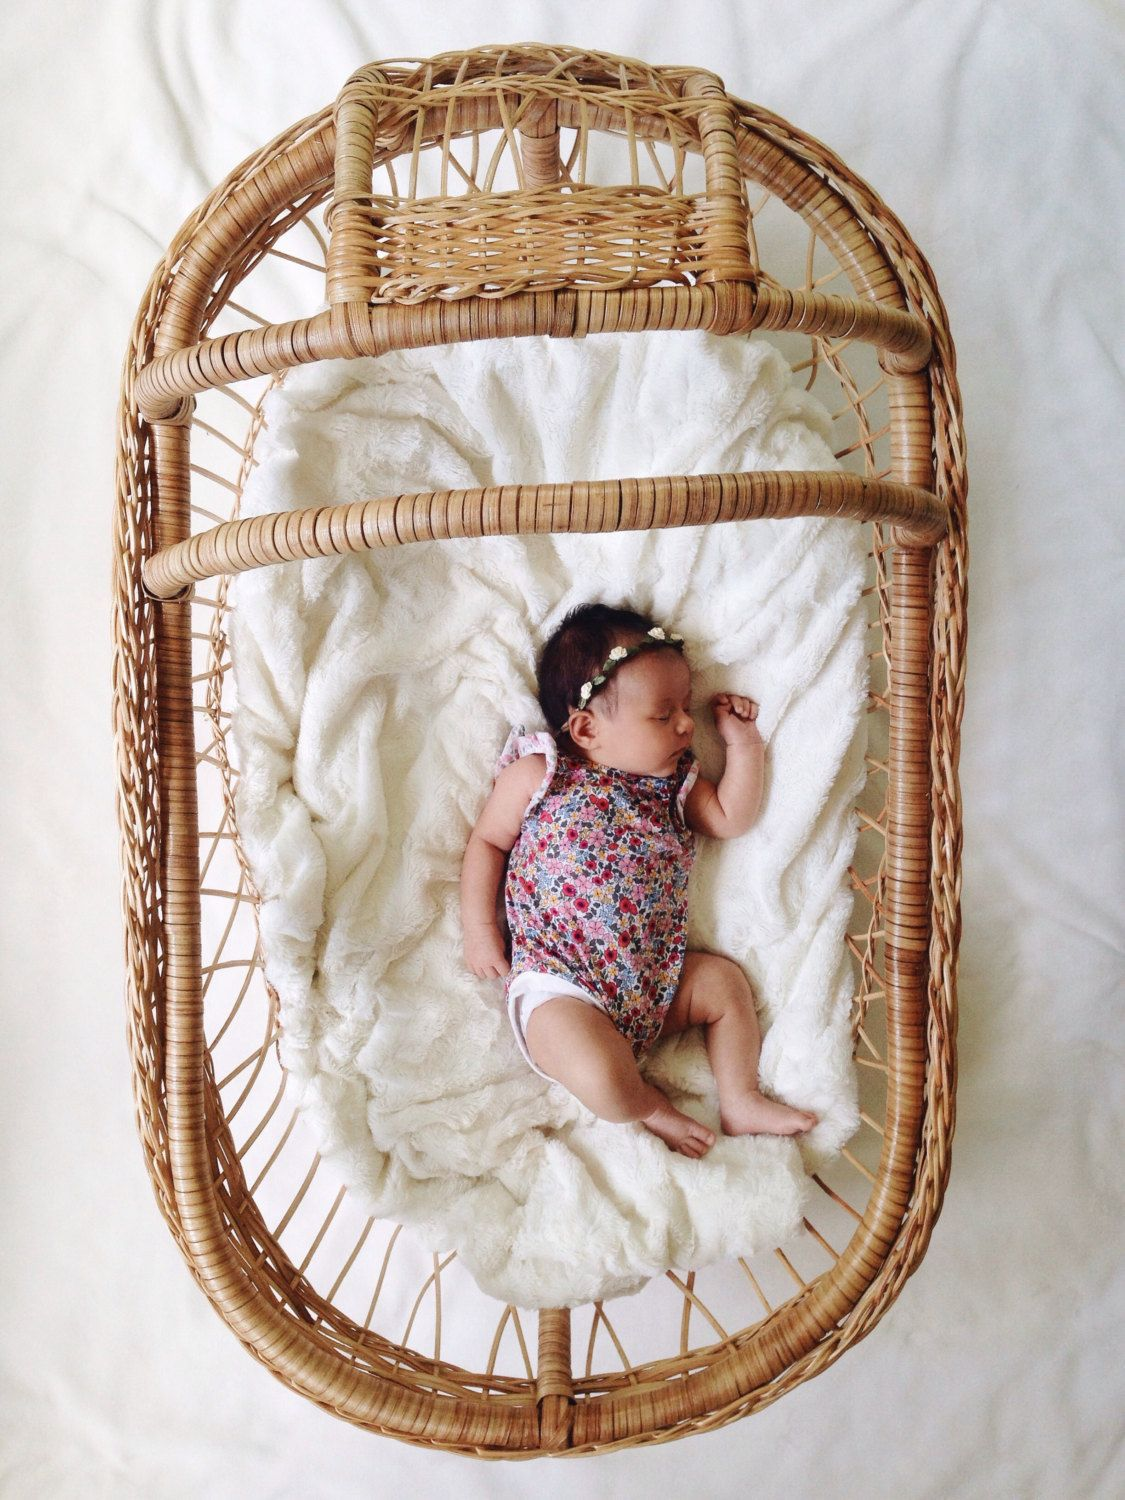 The Cutest Woven Baby Baskets By Design Dua Bedding And Room